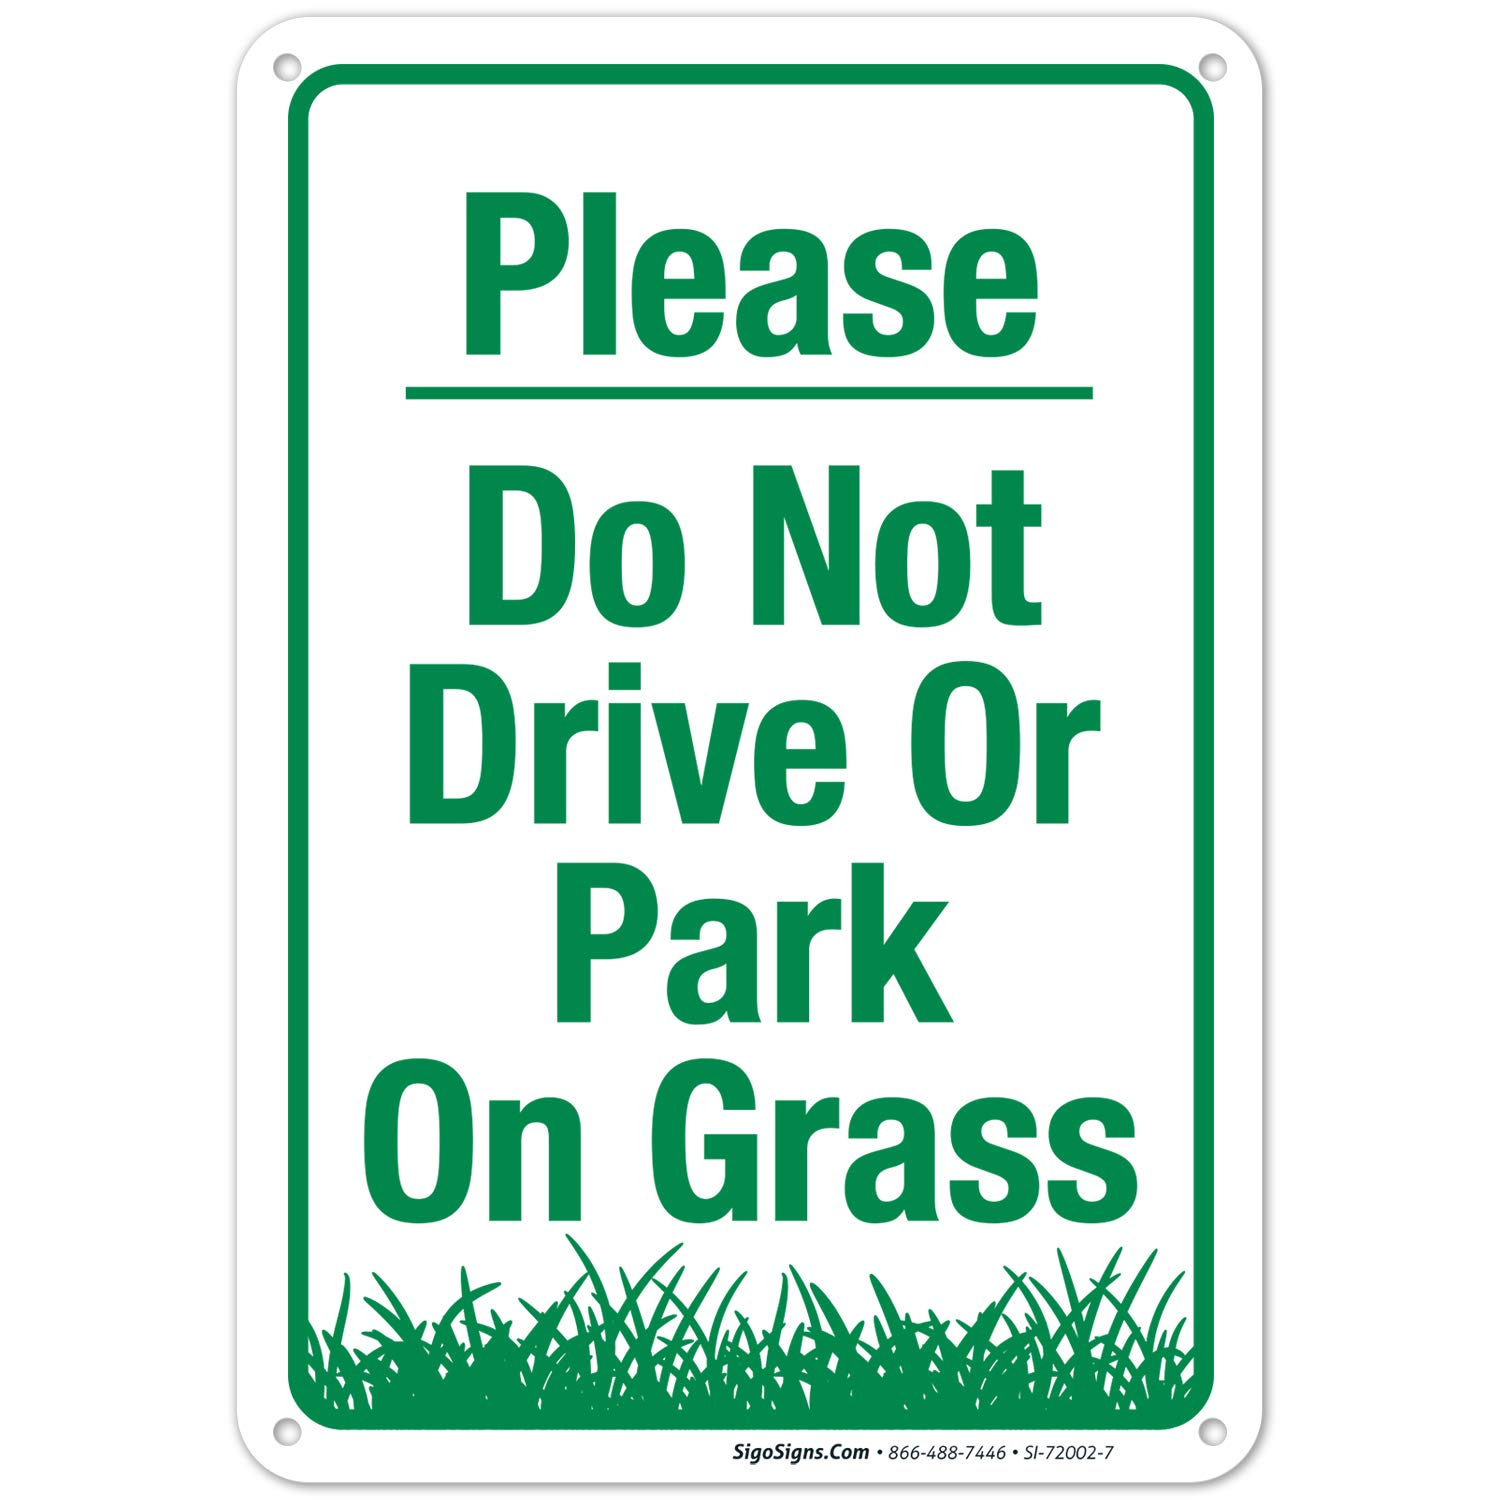 Do Not Park On Grass Sign, Please Do Not Drive Or Park On Grass Sign, 10x7 Rust Free Aluminum, Weather/Fade Resistant, Easy Mounting, Indoor/Outdoor Use, Made in USA by SIGO SIGNS